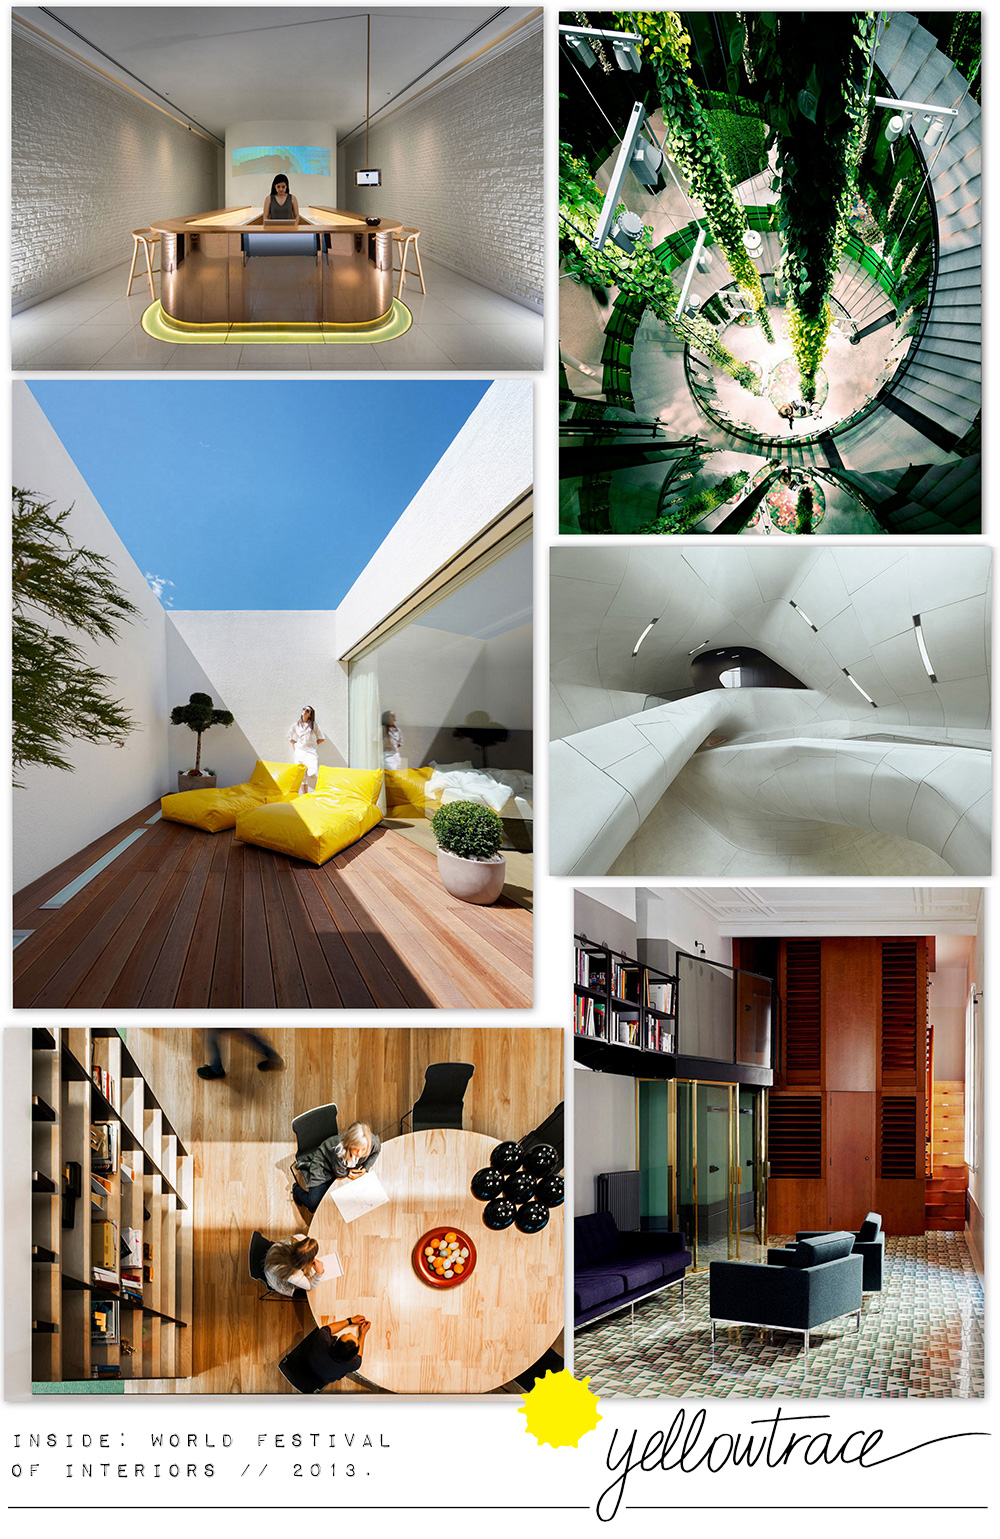 INSIDE World Festival of Interiors Shortlist // 2013.